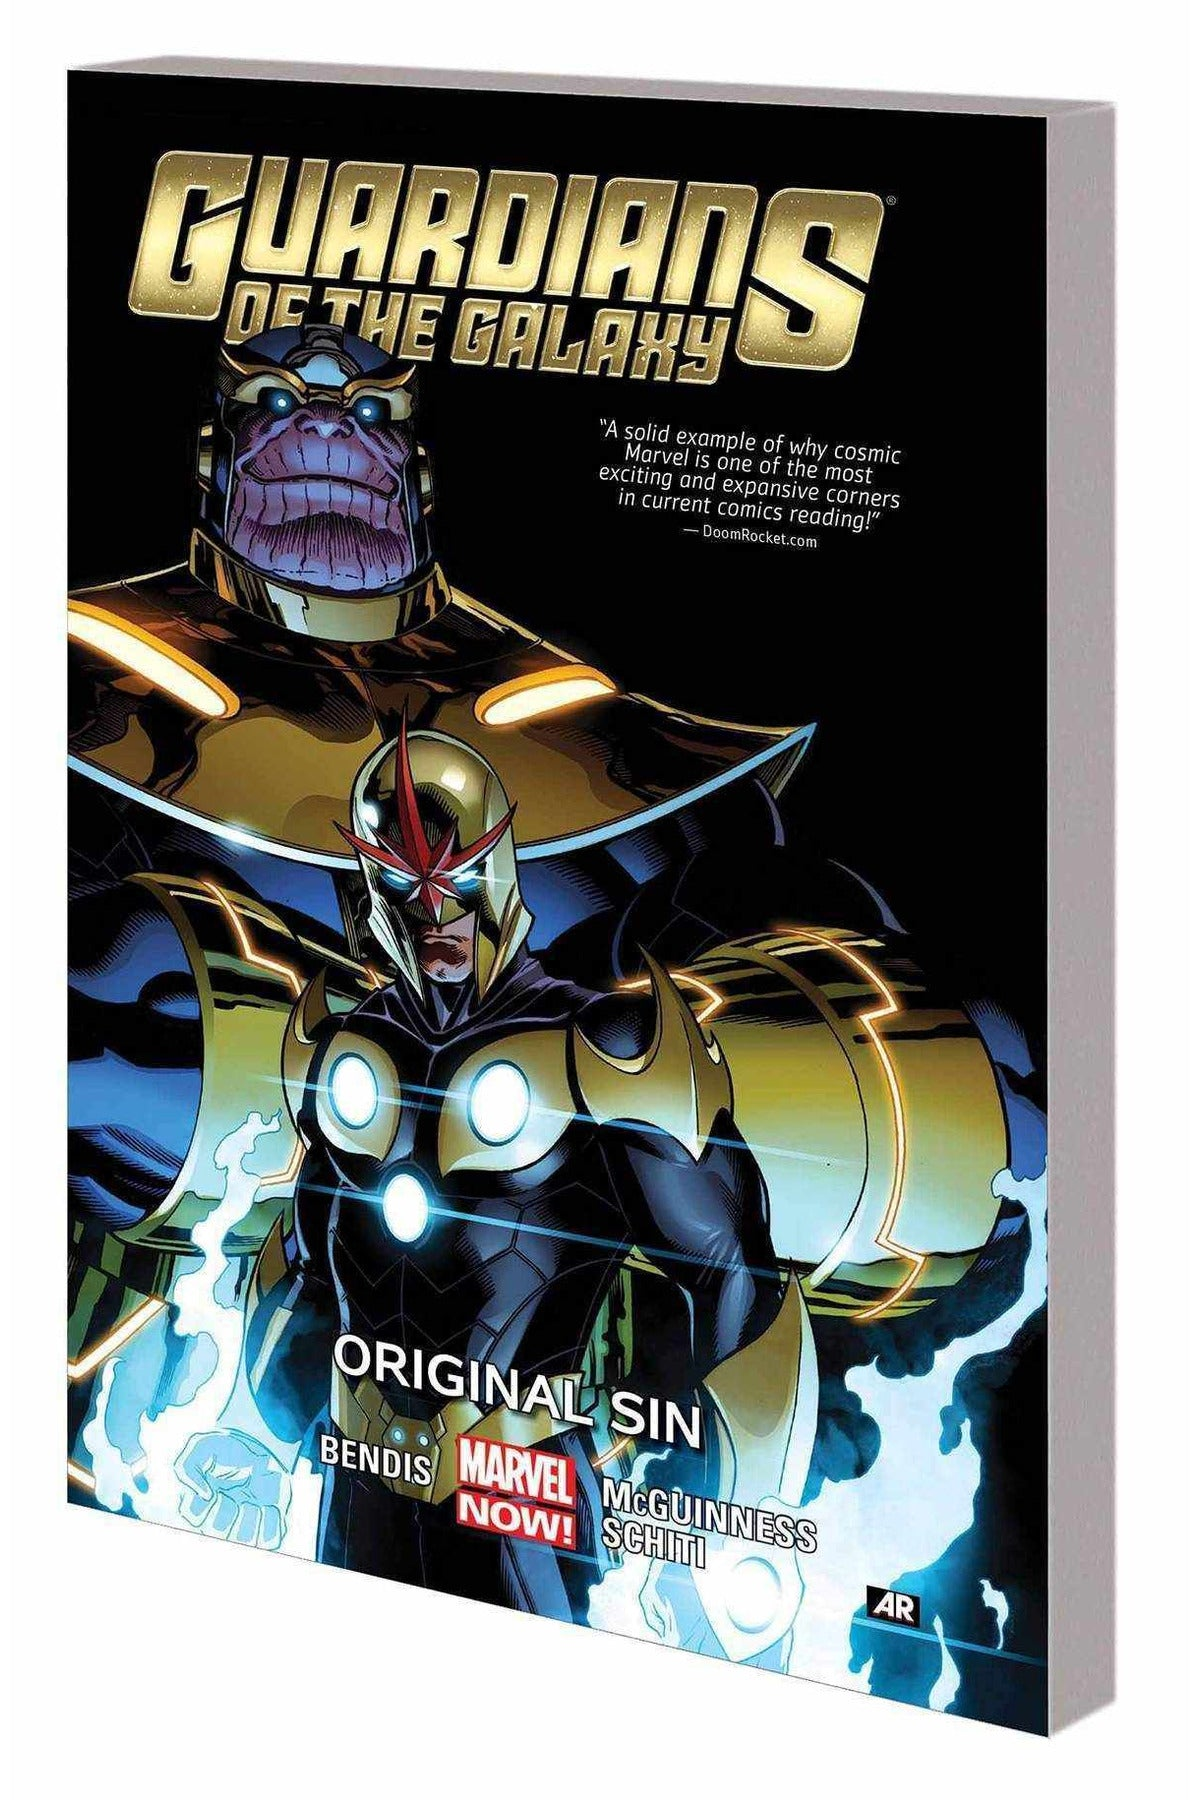 guardians-of-the-galaxy-vol-4-original-sin-diamond-9780785192466-thegamersden.com